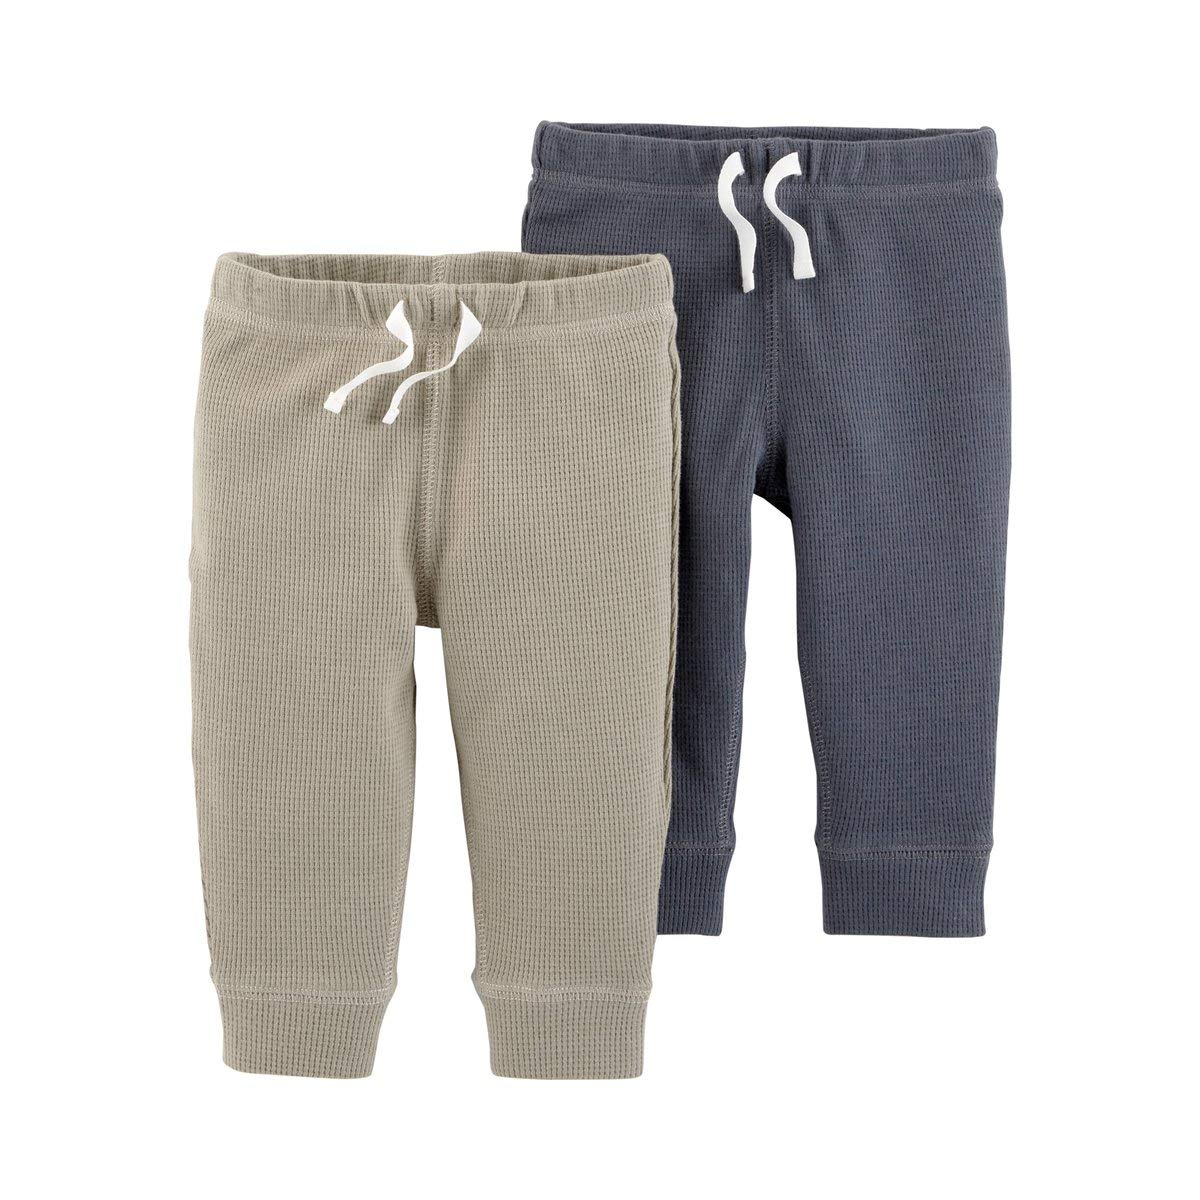 Brown 12 Months Carters Baby Boys Pull-On Pants